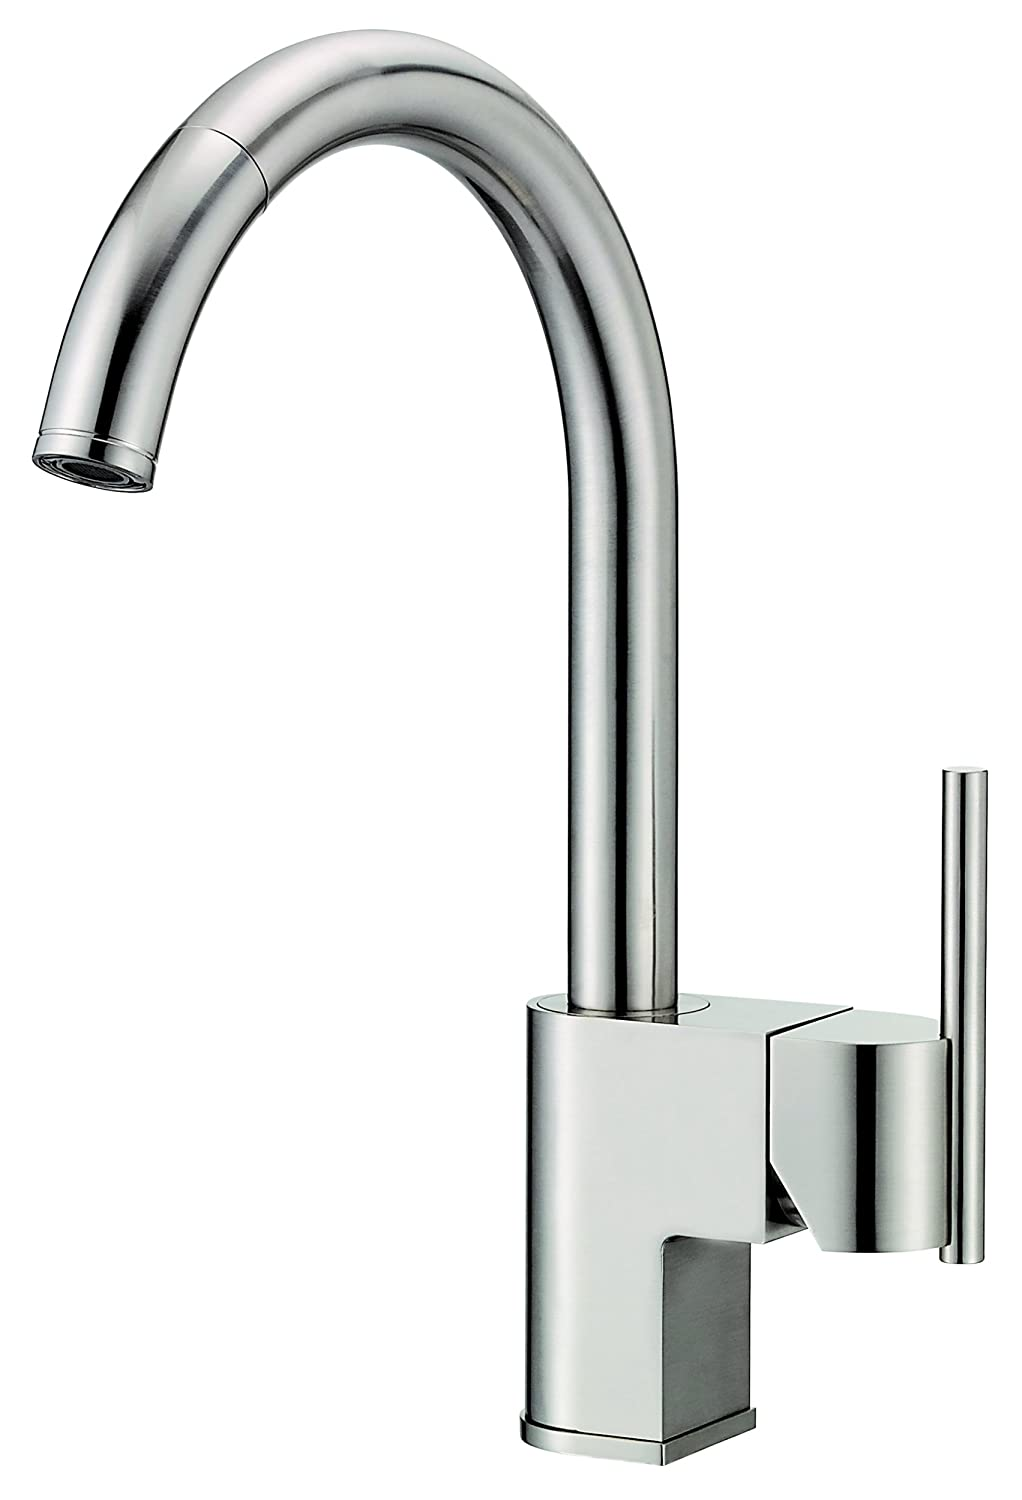 sinks brand danze faucet sprayer by replacement delta entity faucets parts kitchen and